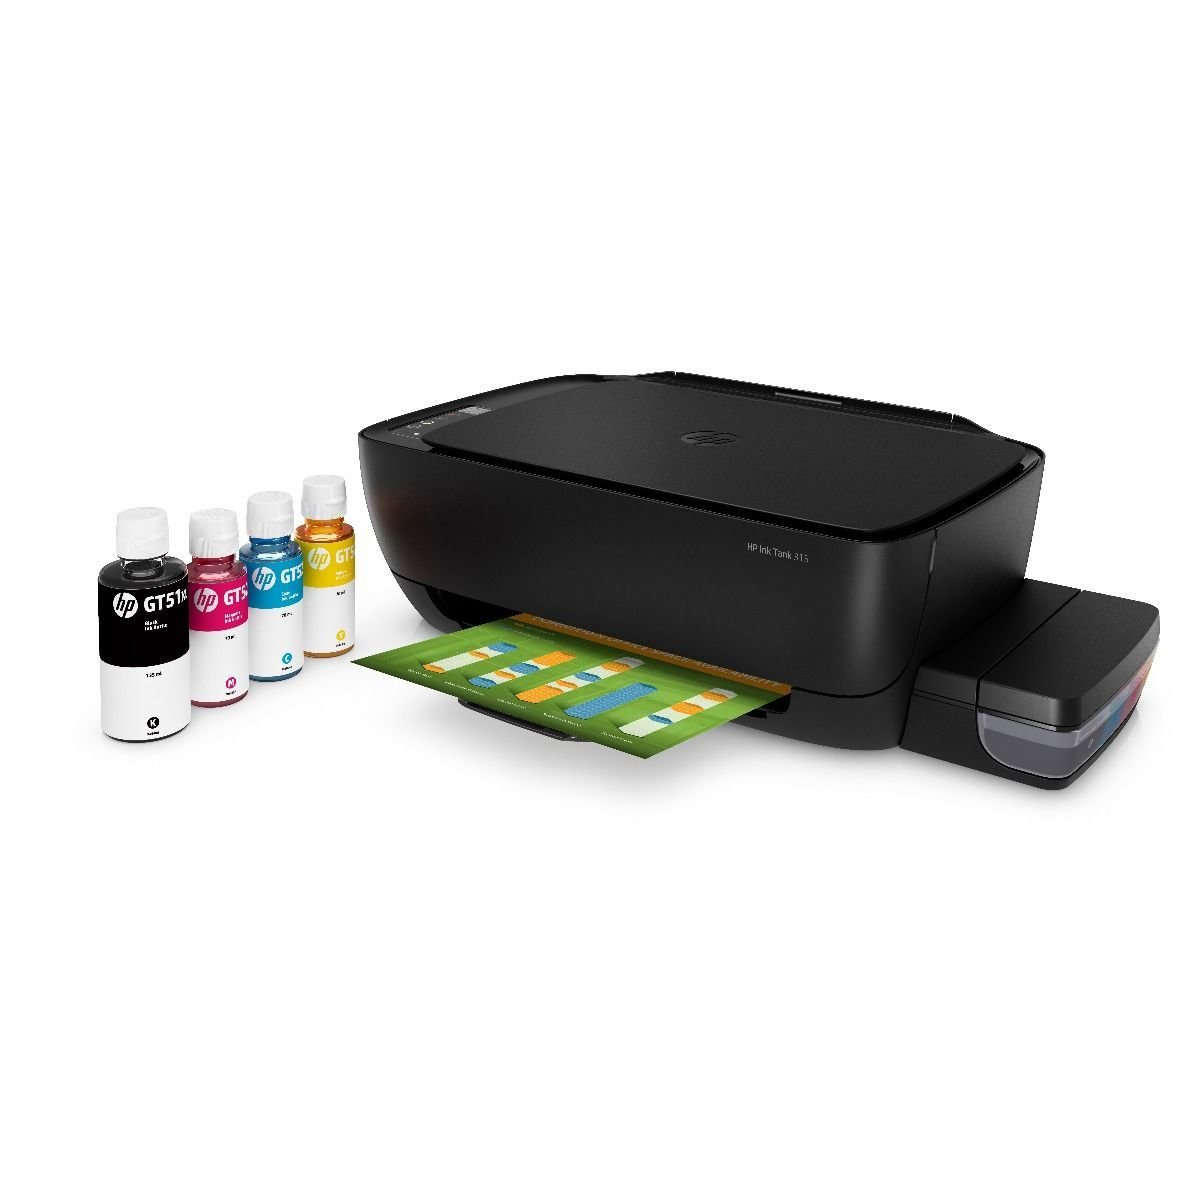 HP 315 Color All In One Ink Tank Printer, Rs 8670